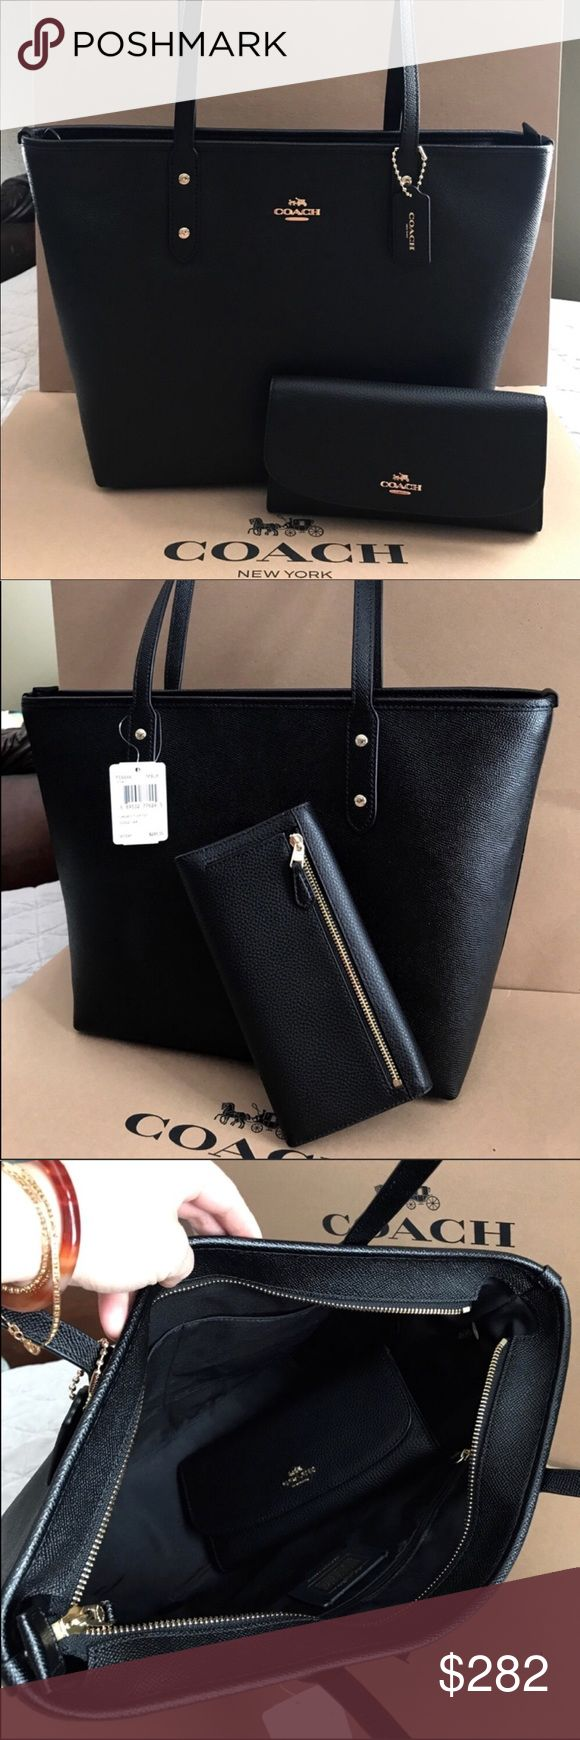 🍀Coach Set🍀 100% Authentic Coach Tote Bag and Checkbook Wallet, both brand new with tag!😍😍😍 Coach Bags Totes